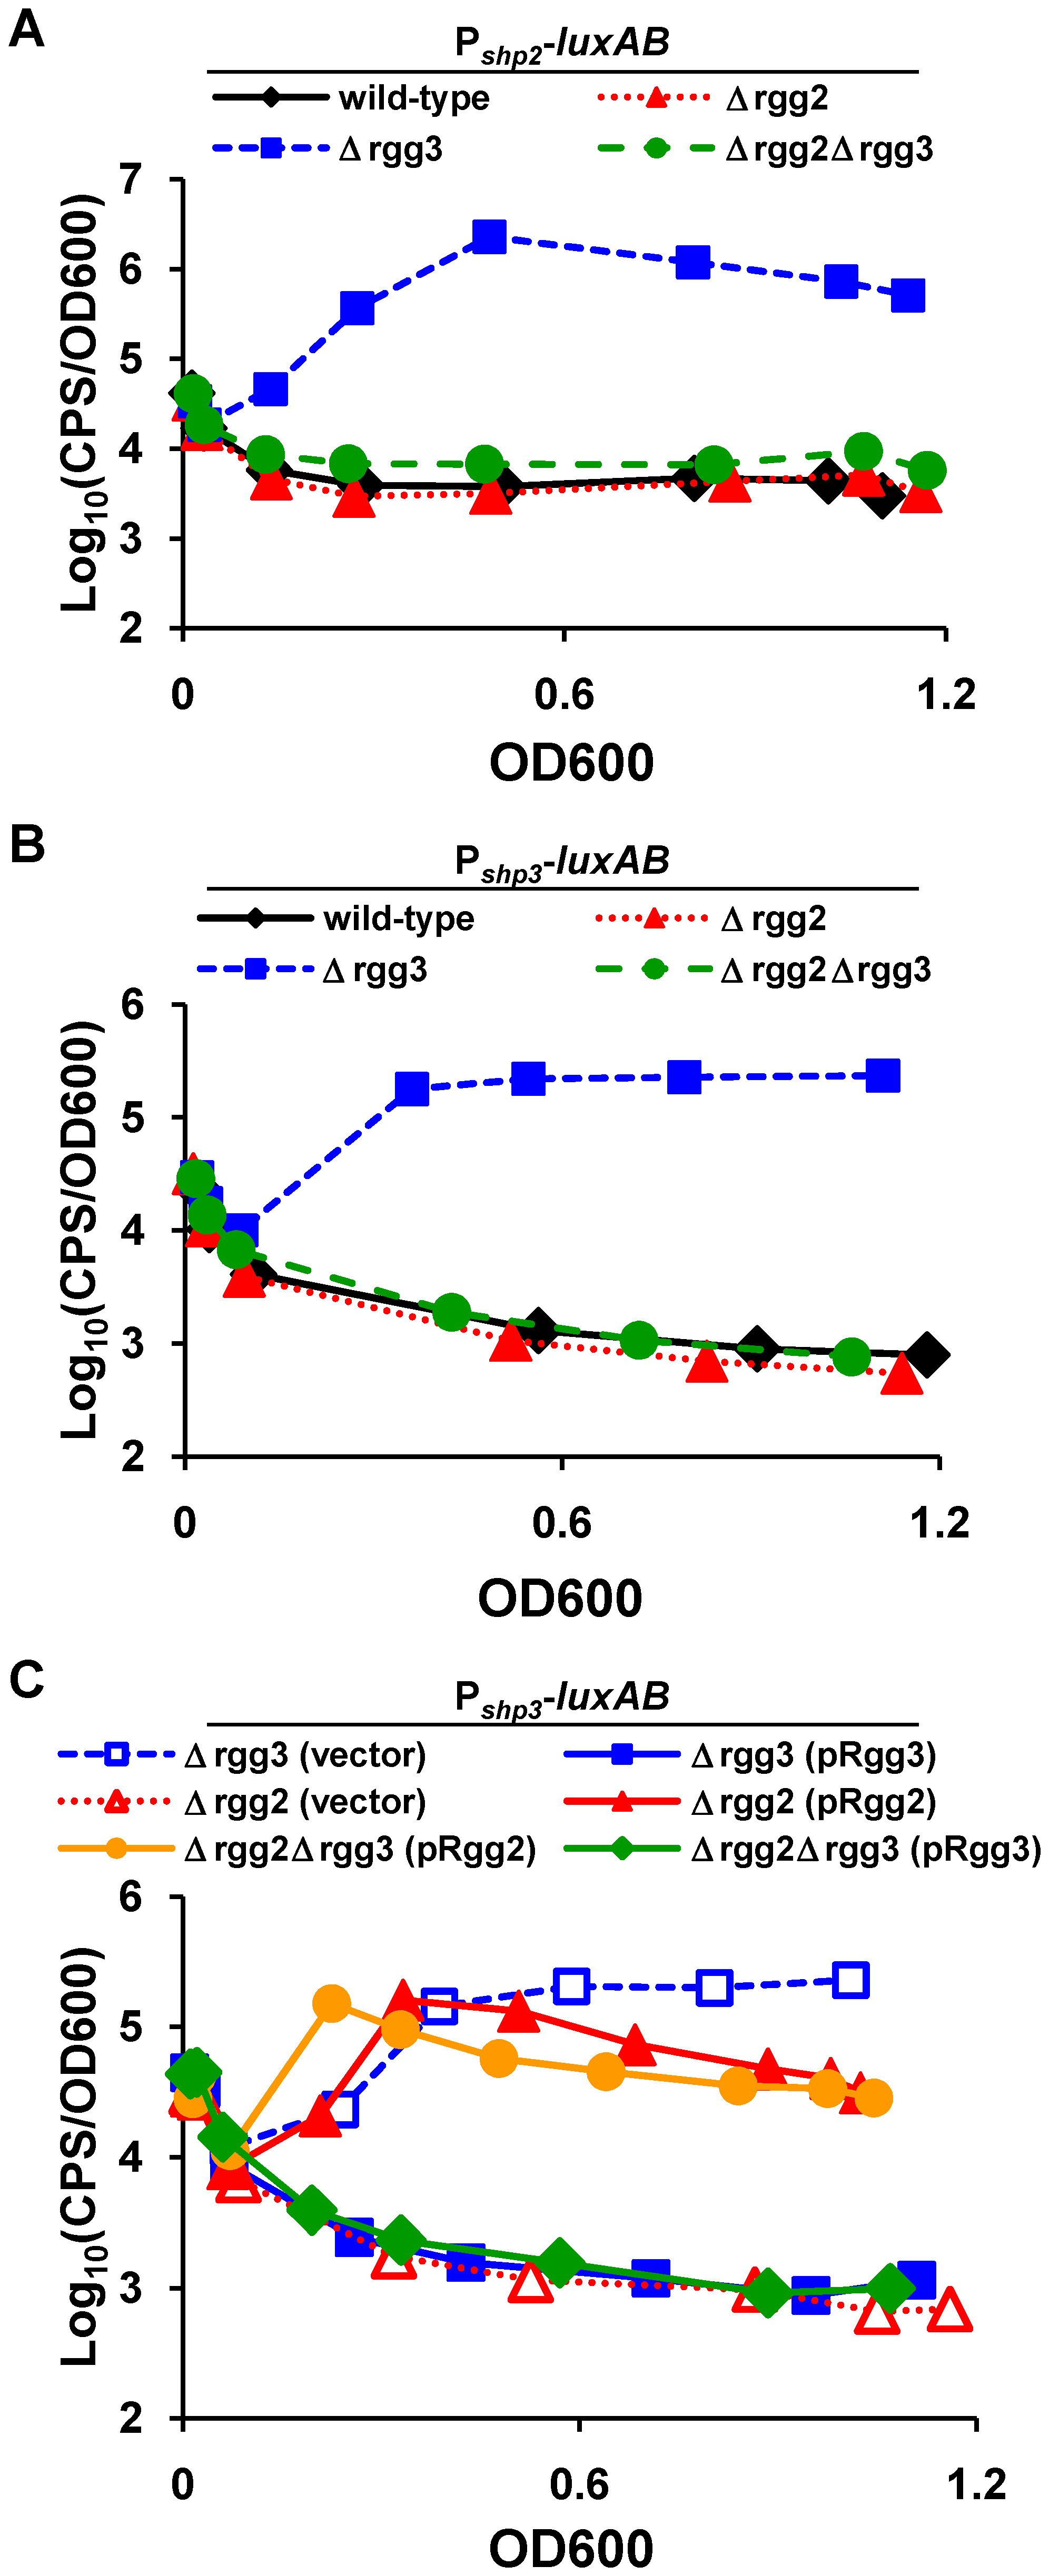 Gene regulation mediated by Rgg proteins.